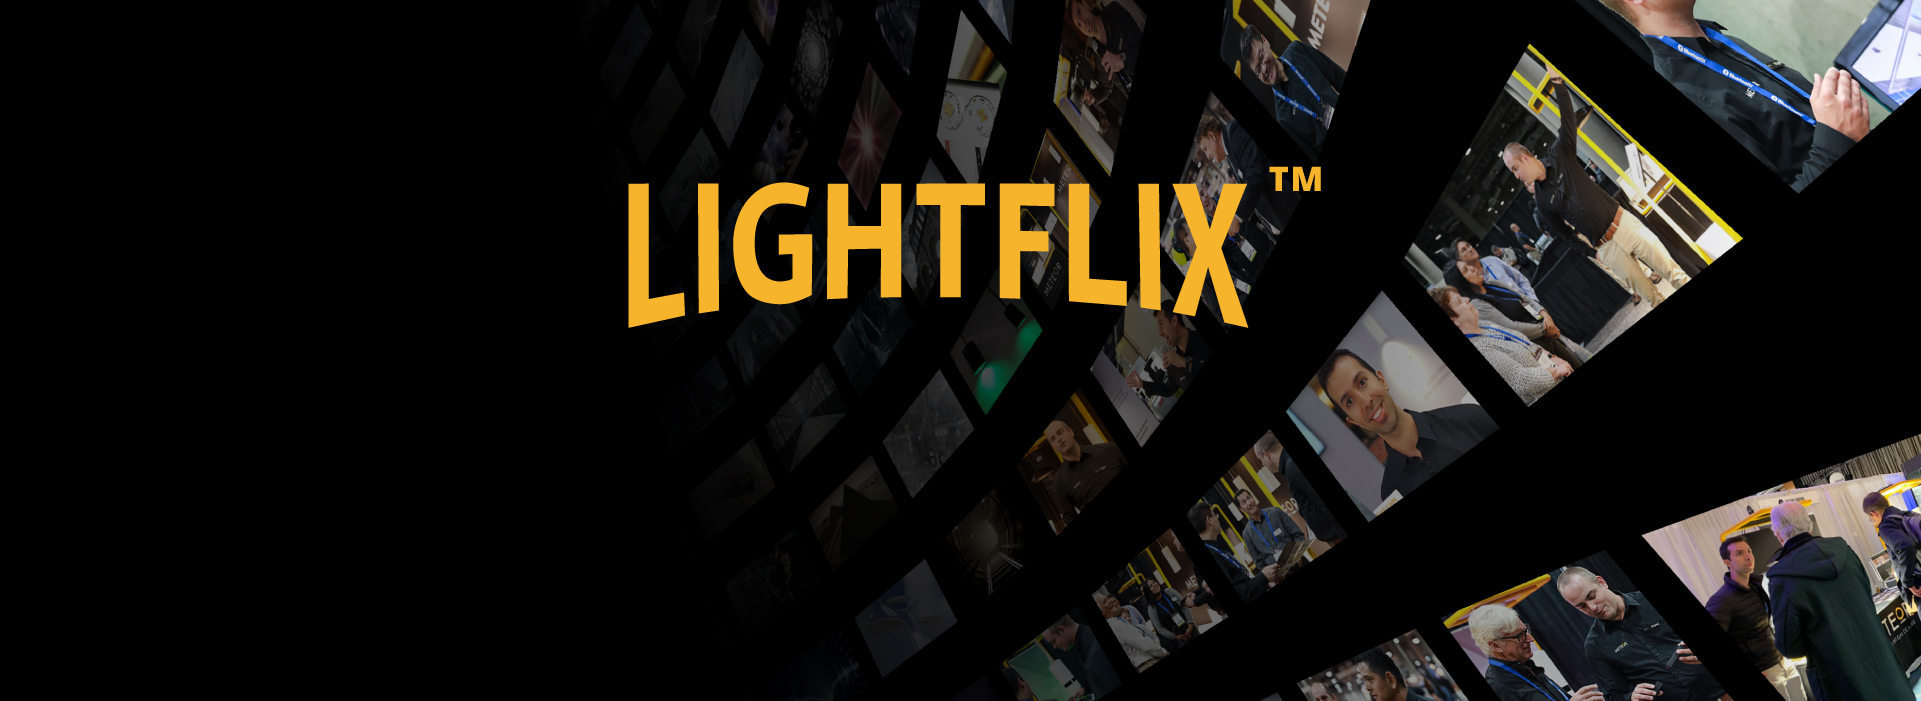 Meteor Lighflix program - The new online sales call experience